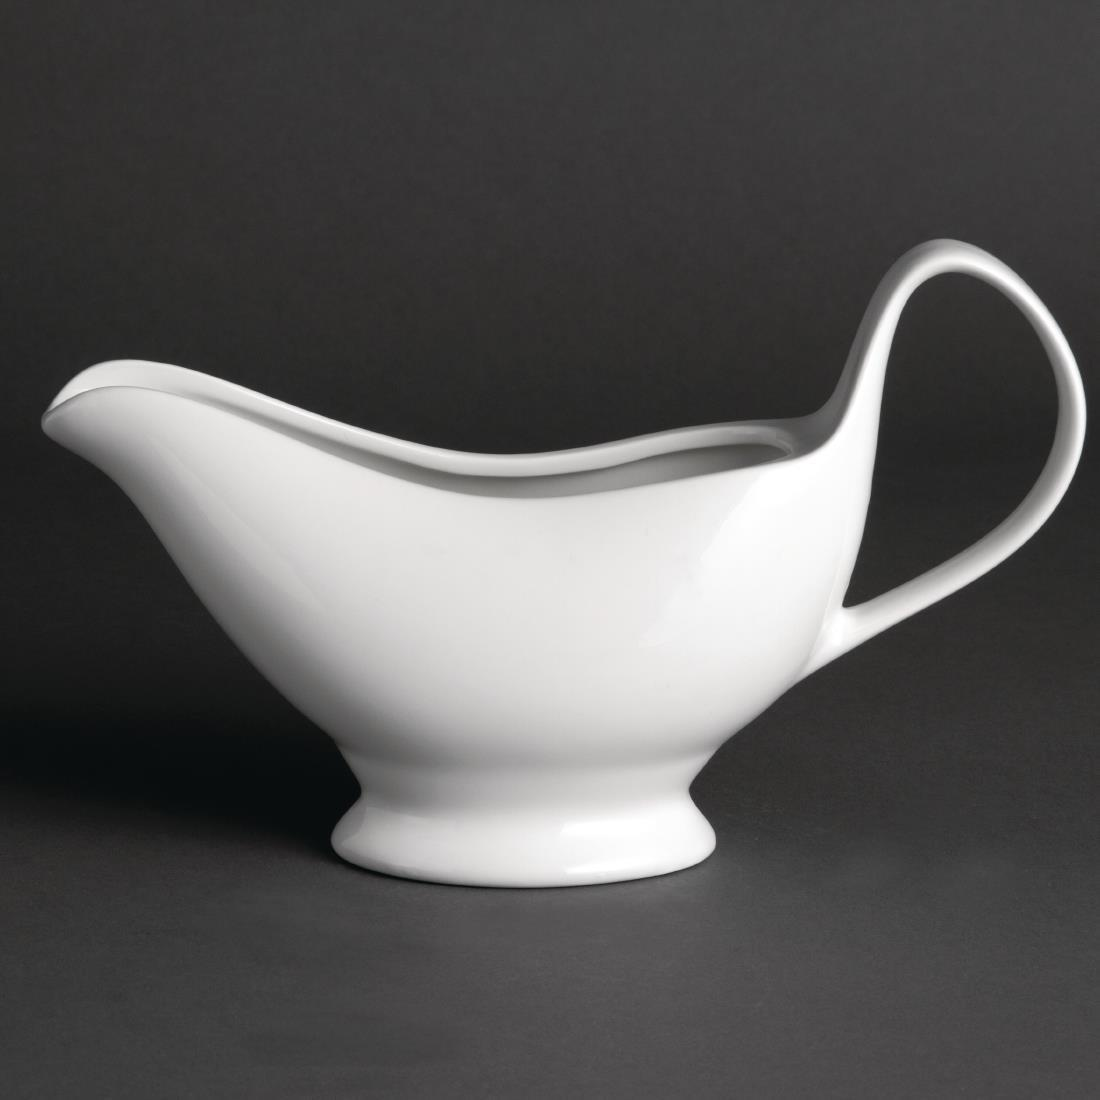 Olympia Whiteware Gravy Boats 340ml 12oz